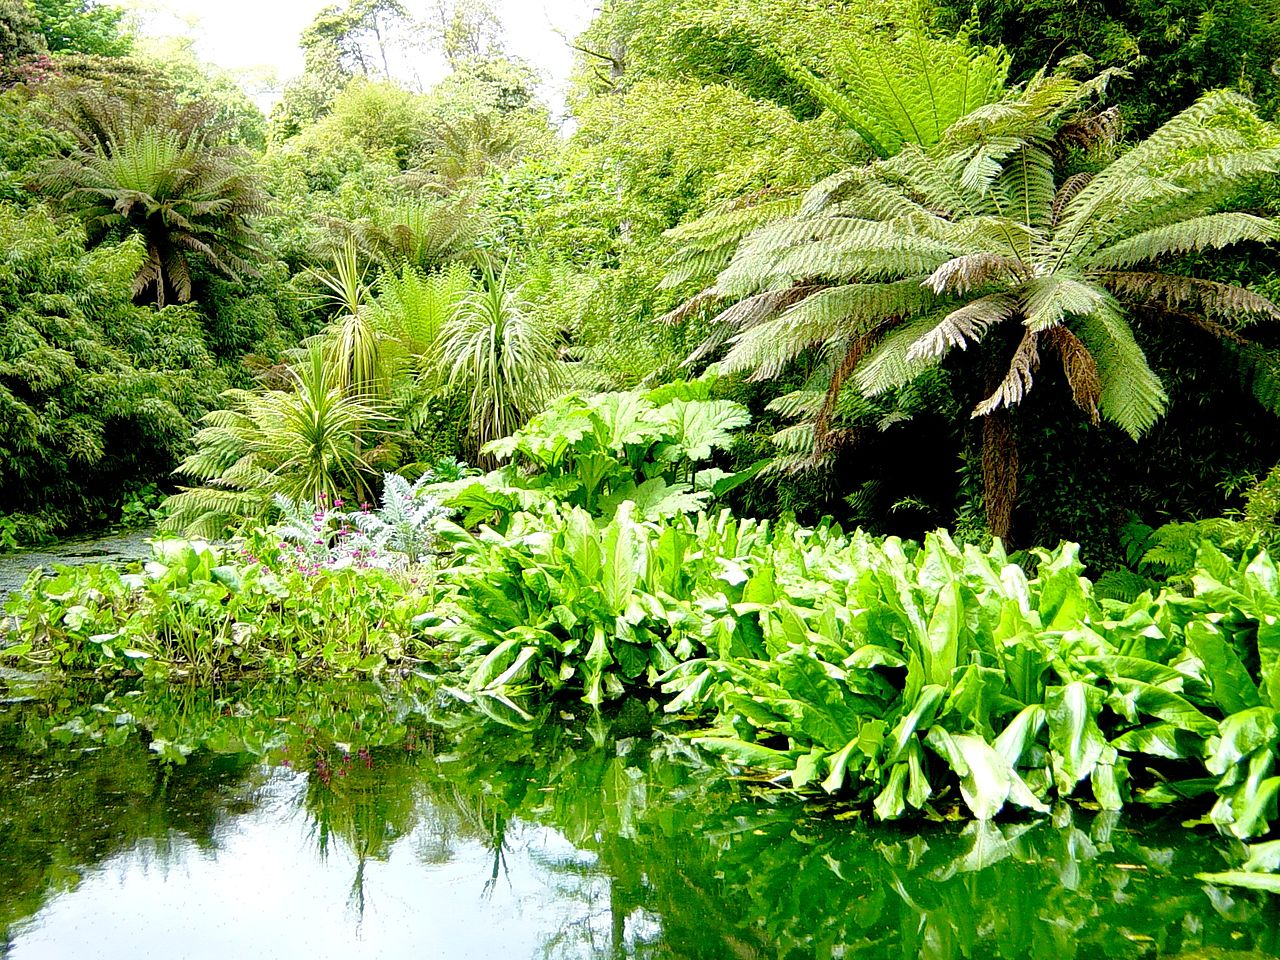 The lost gardens of heligan in cornwall - File The Jungle The Last Gardens Of Heligan Jpg